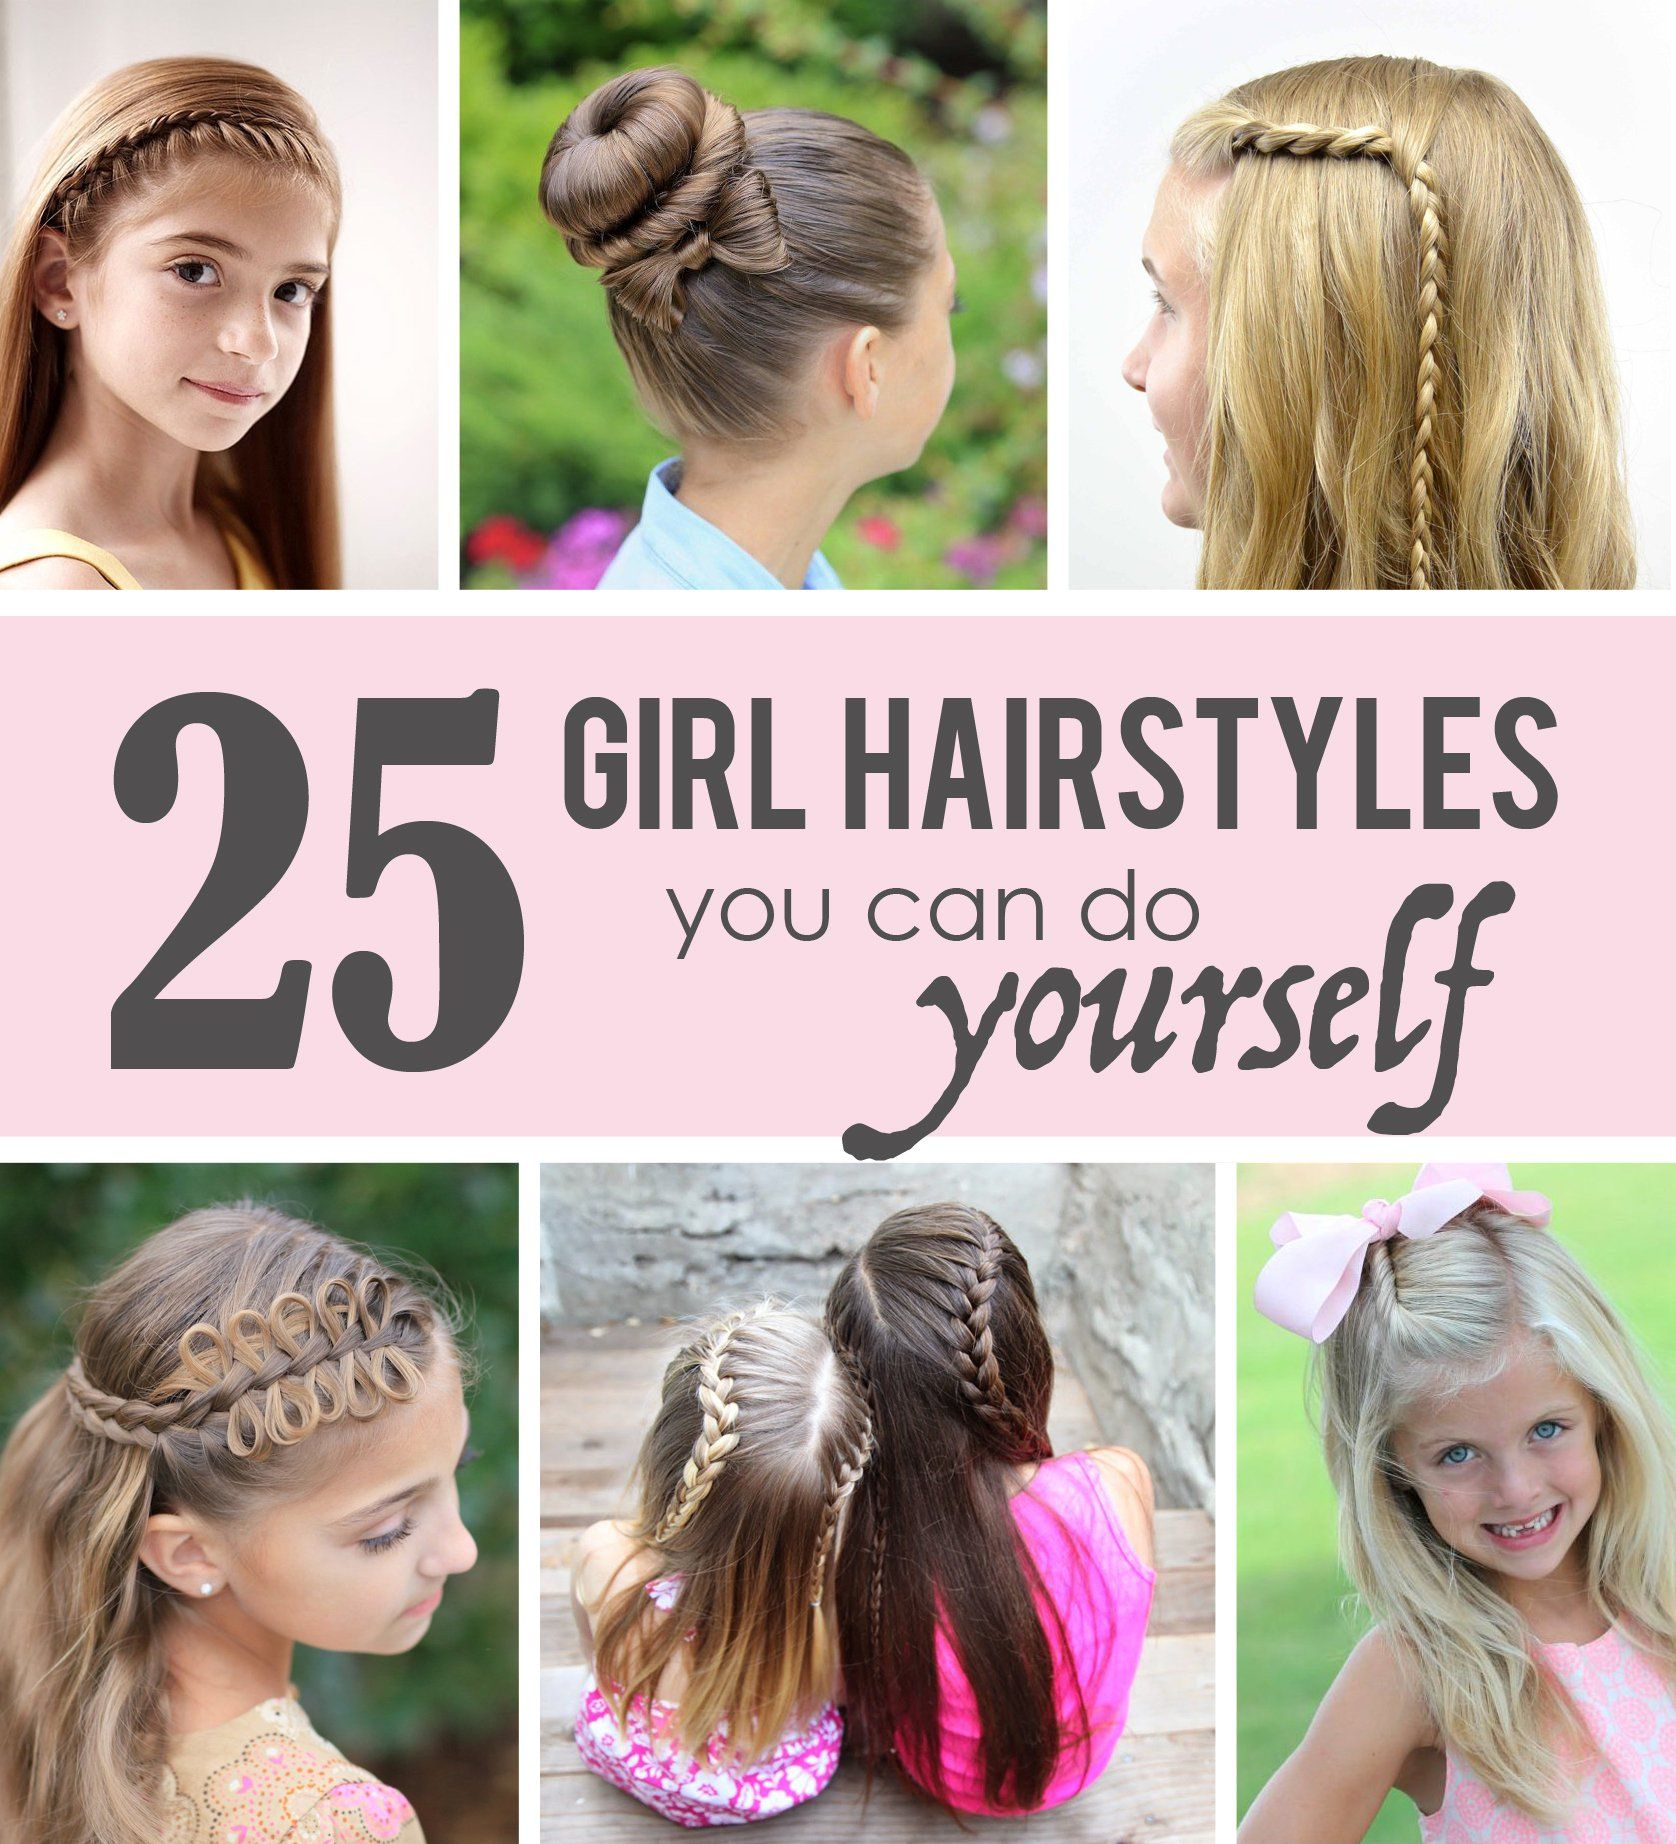 25 little girl hairstylesyou can do yourself get out of your 25 little girl hairstylesyou can do yourself get out of your solutioingenieria Choice Image